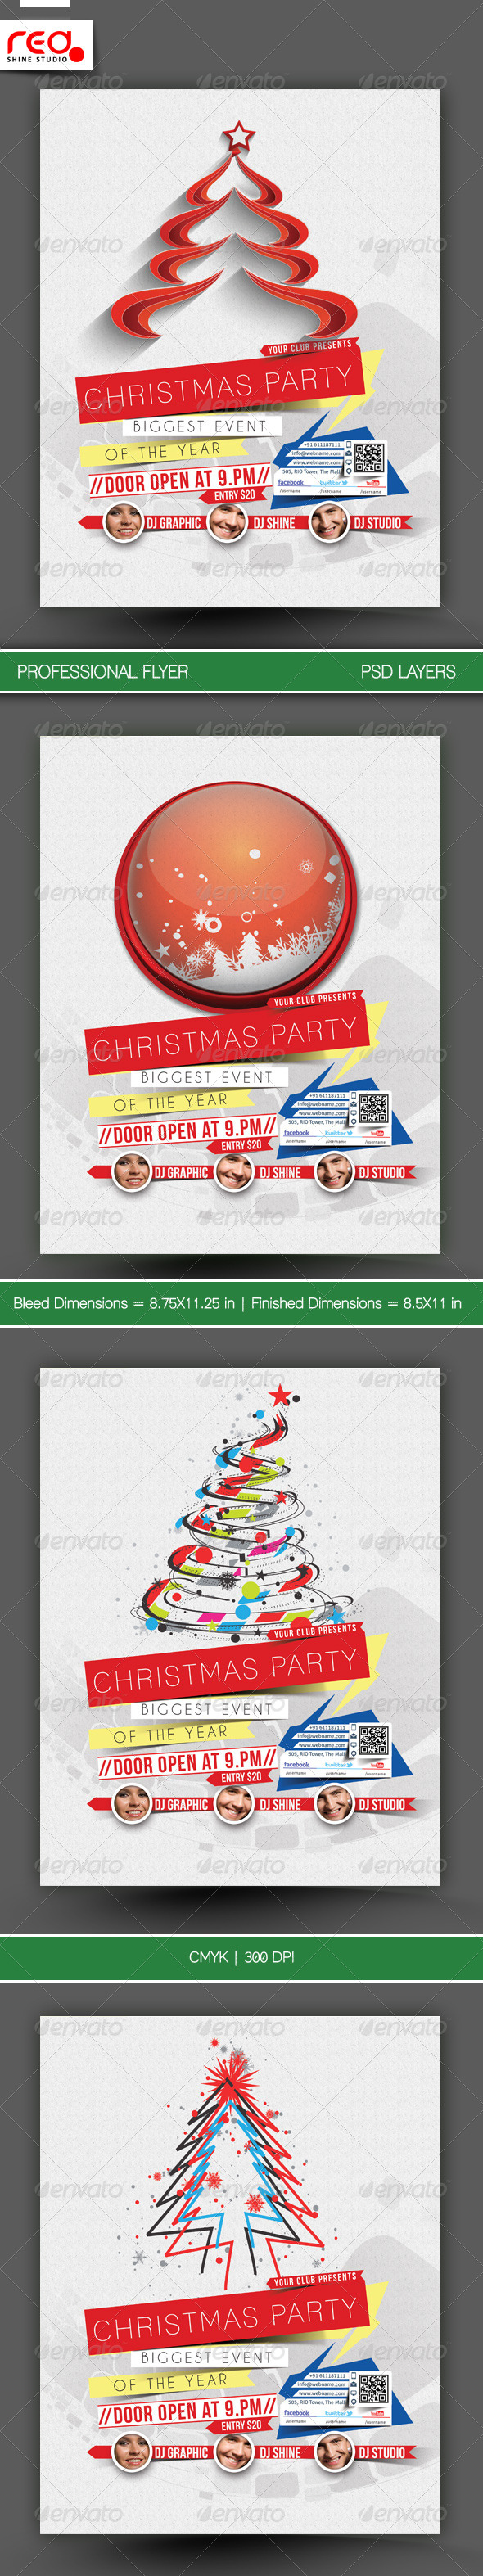 GraphicRiver Christmas Party Flyer & Poster Template 3 6063849